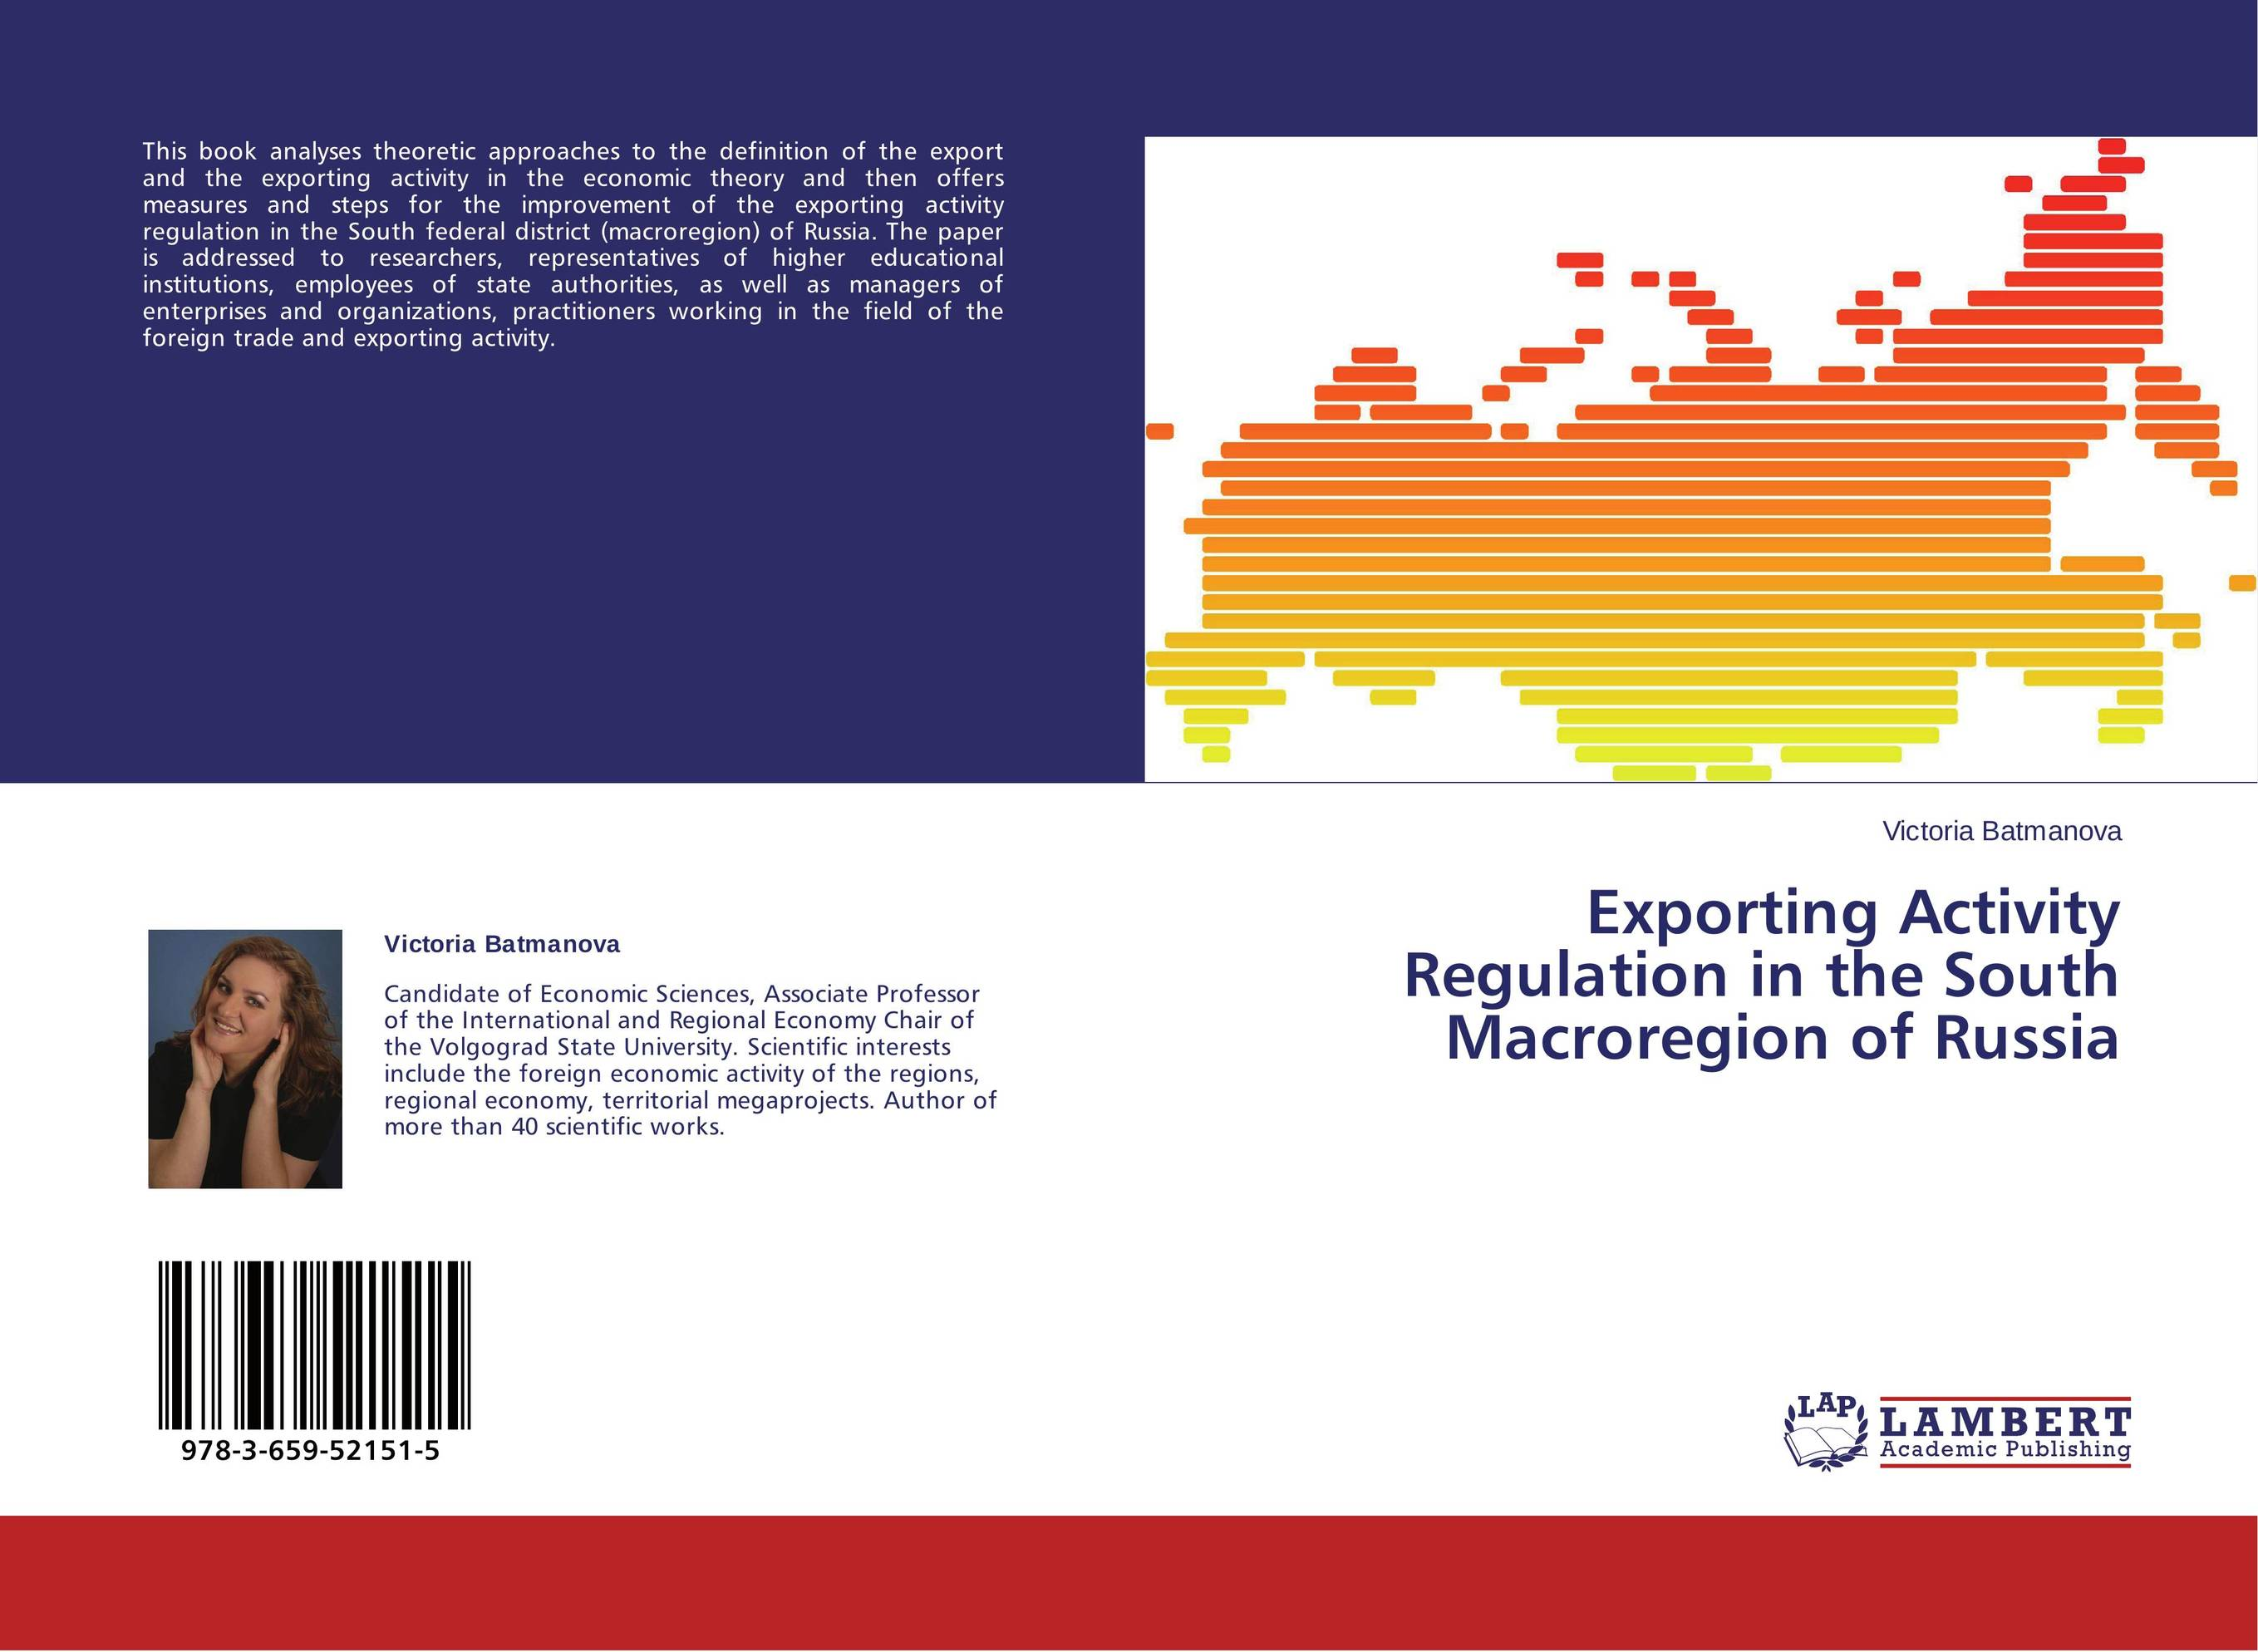 Exporting Activity Regulation in the South Macroregion of Russia theoretical aspects of the exporting activity regulation